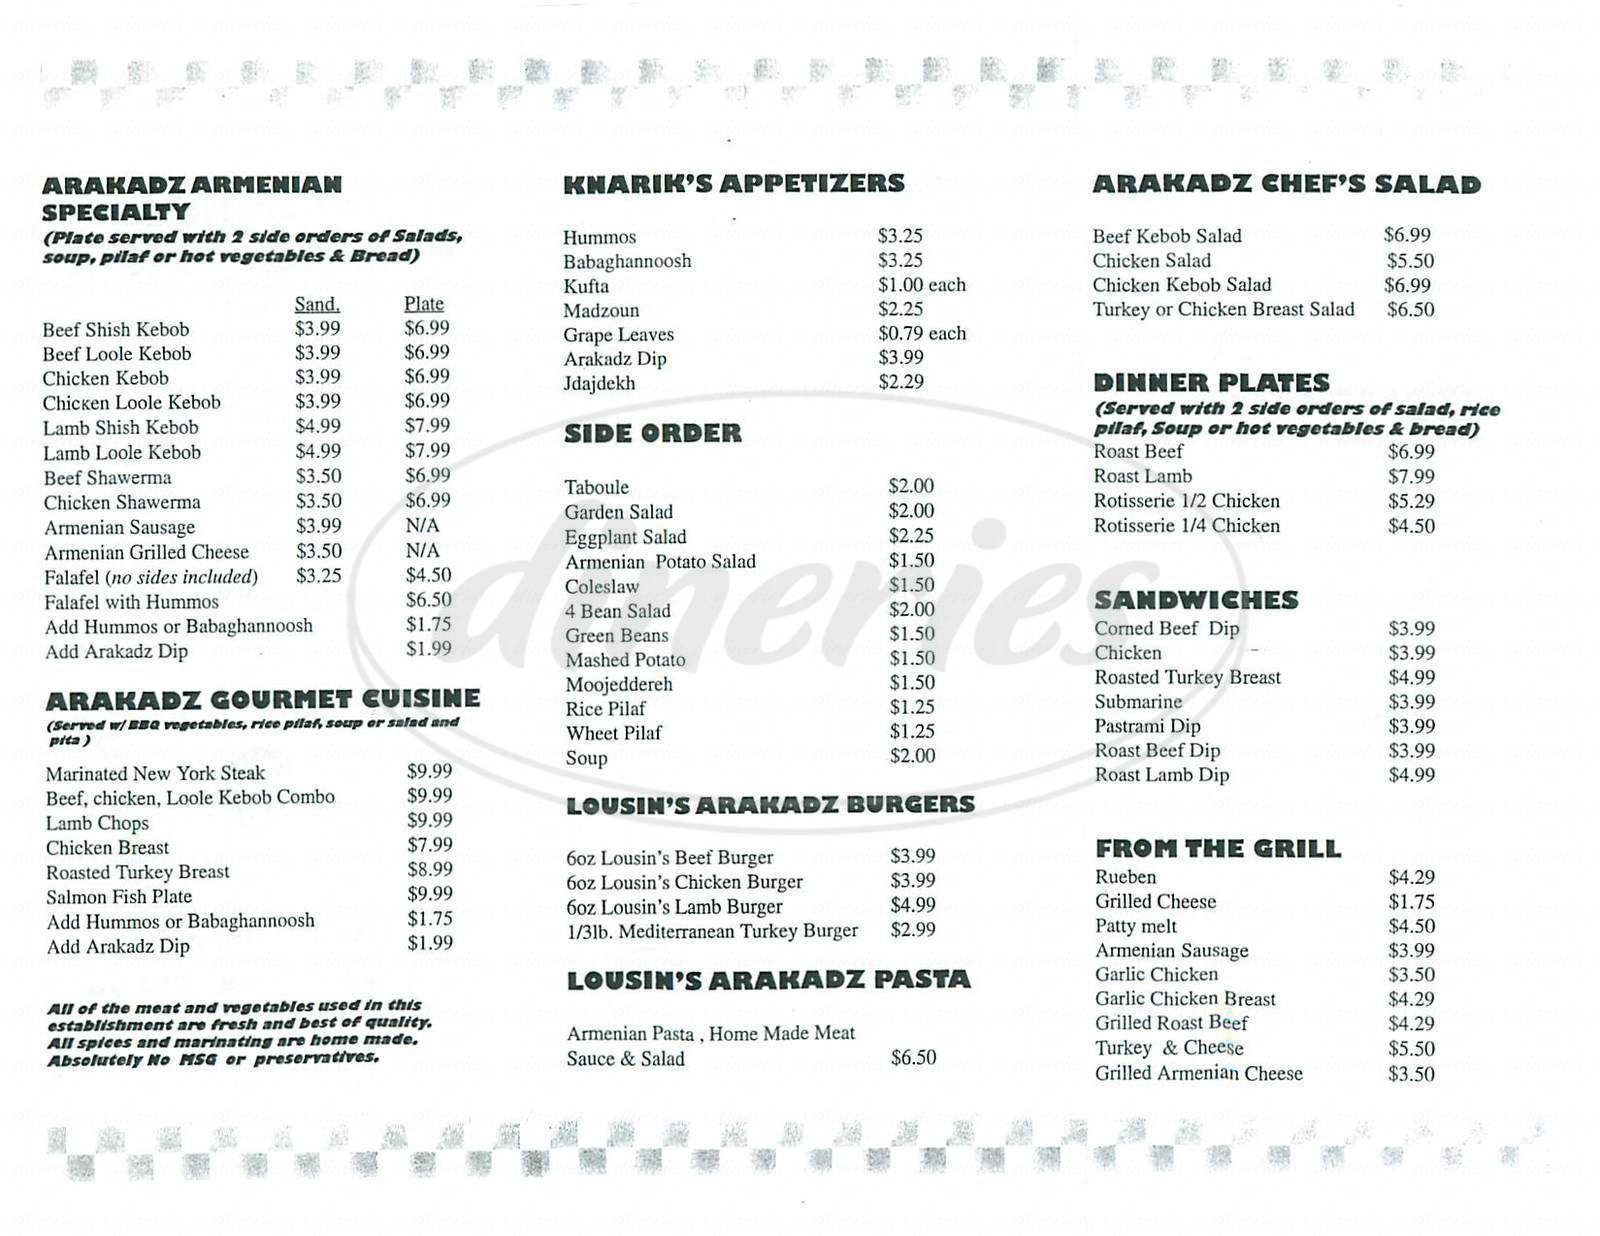 menu for Lousins Arakadz Cuisine